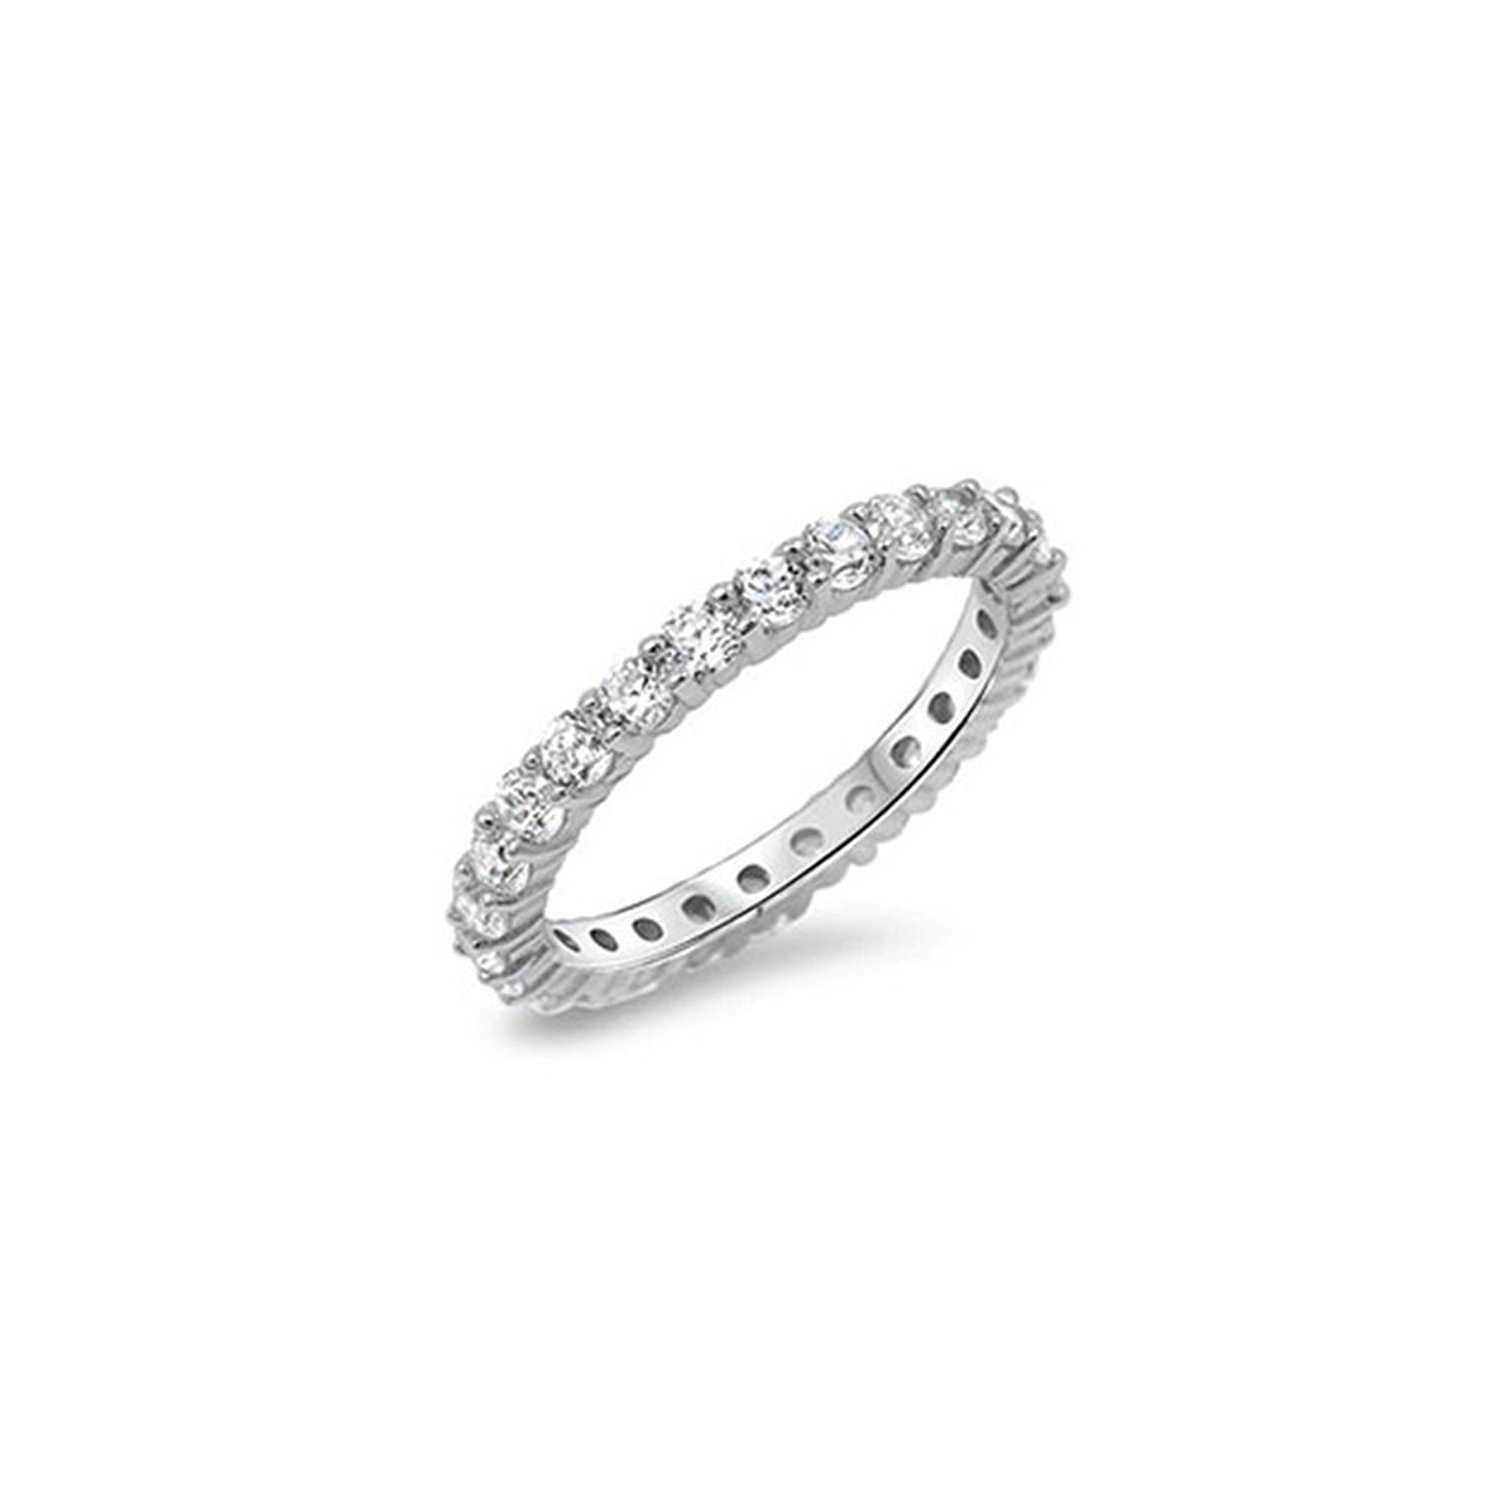 Noureda Sterling silver Classy Round Cut Clear Czs Stackable Band Ring with Band Width of 3MM